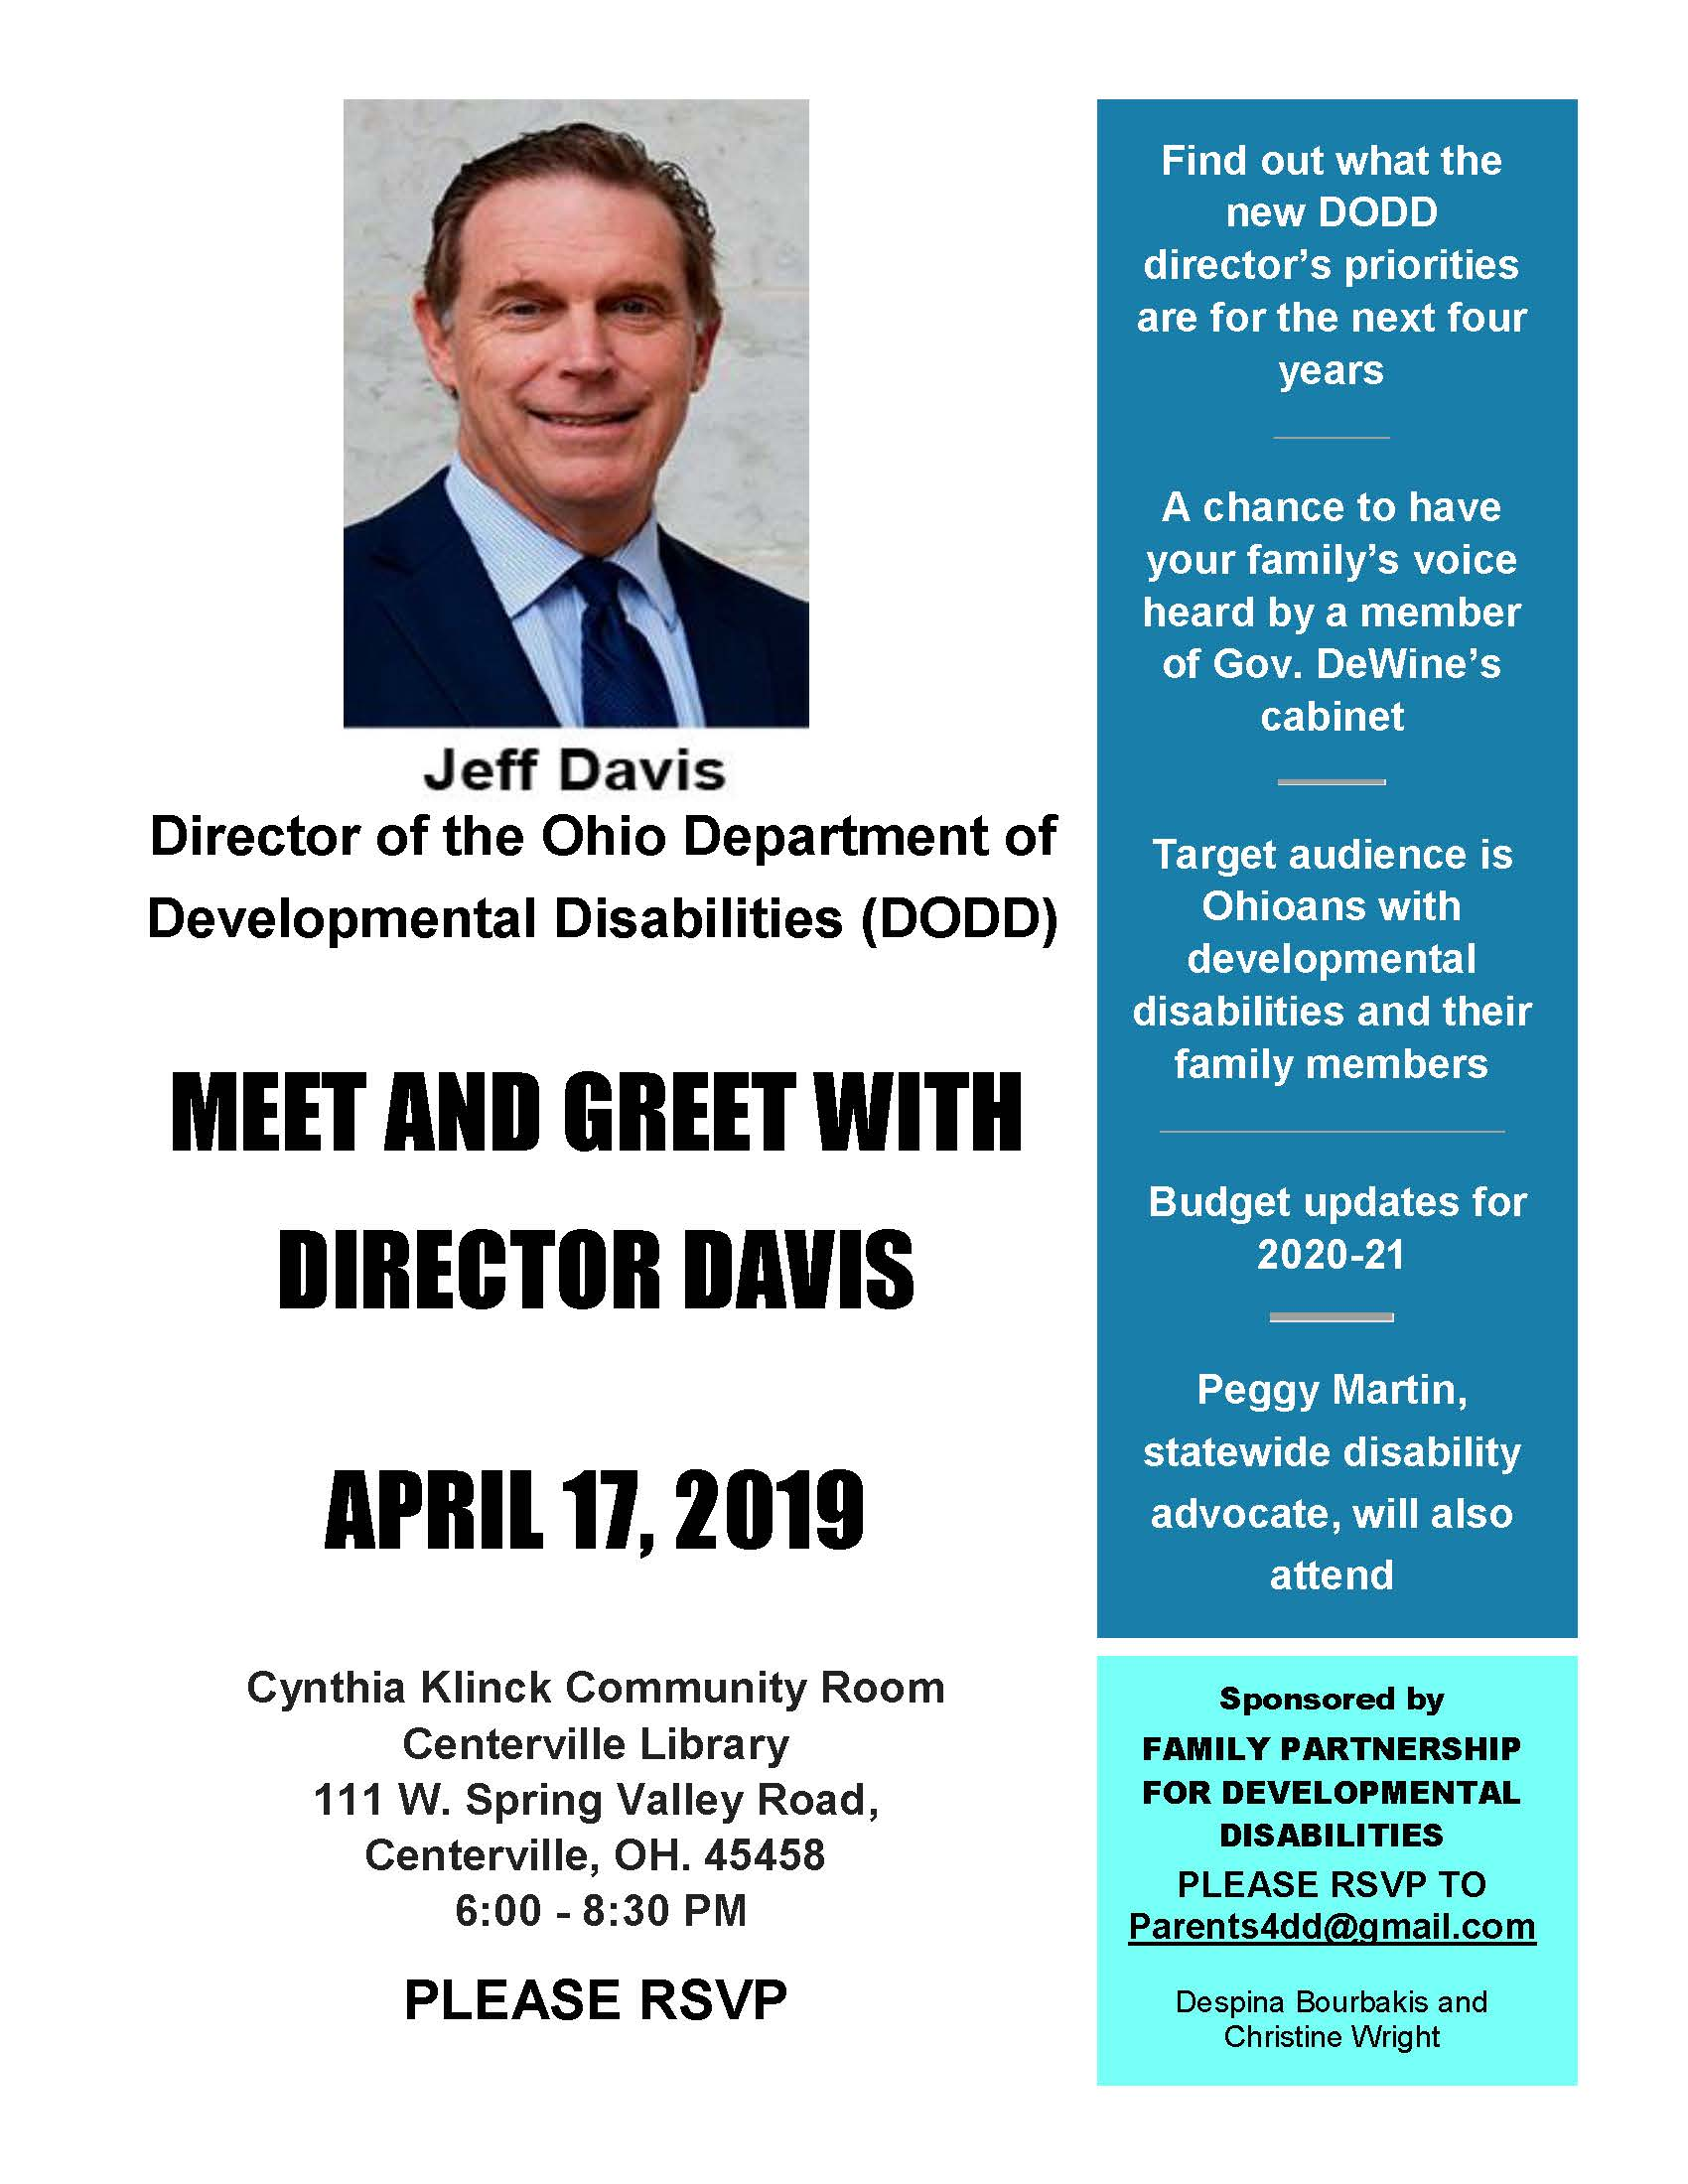 Meet & Greet with Jeff Davis flyer 4-17-19